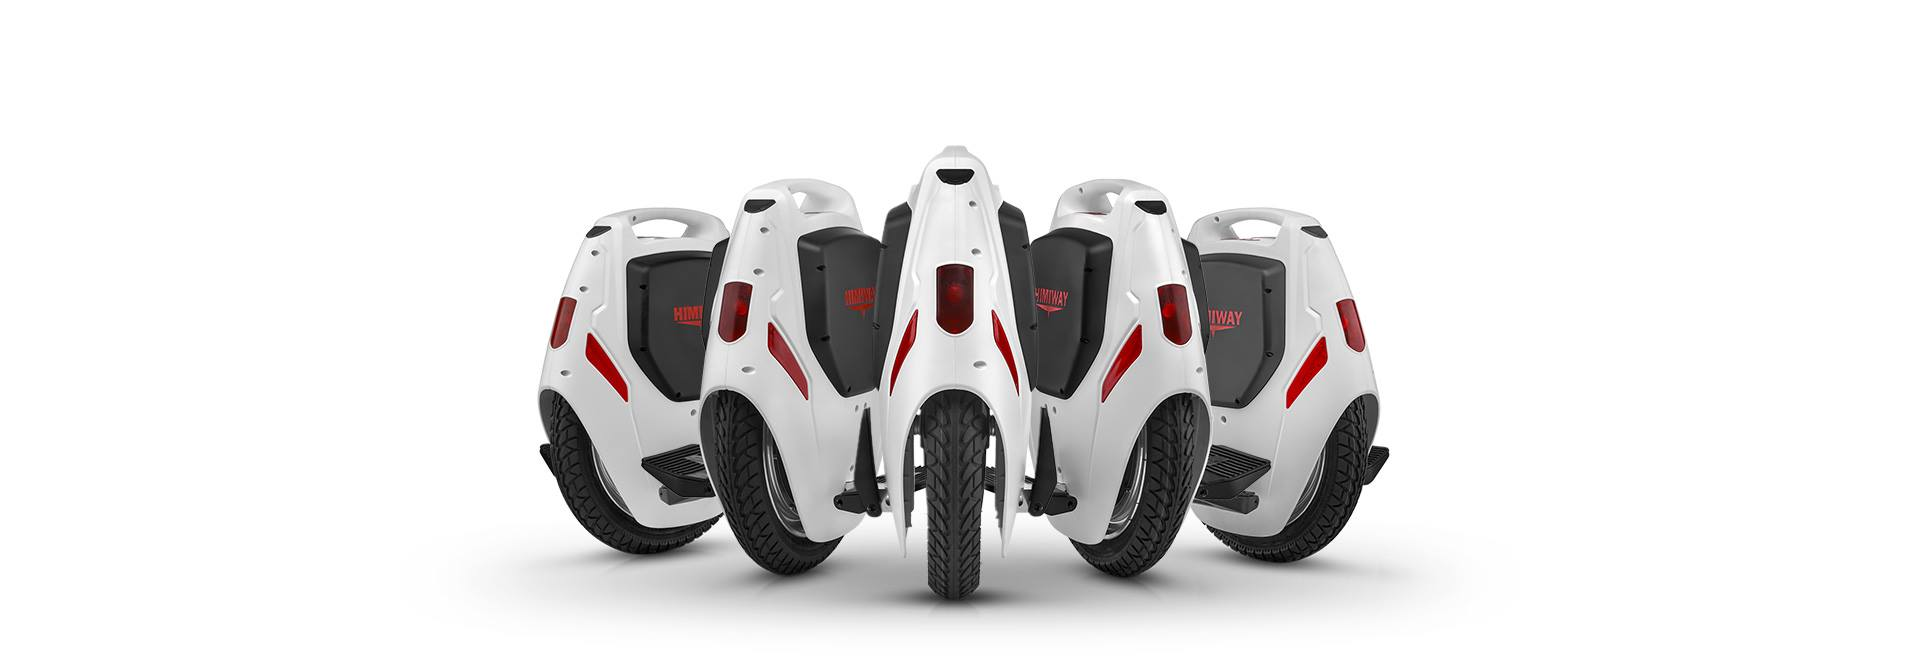 Electric Unicycle Himiway 14 Gyrowheel Dublin Ireland